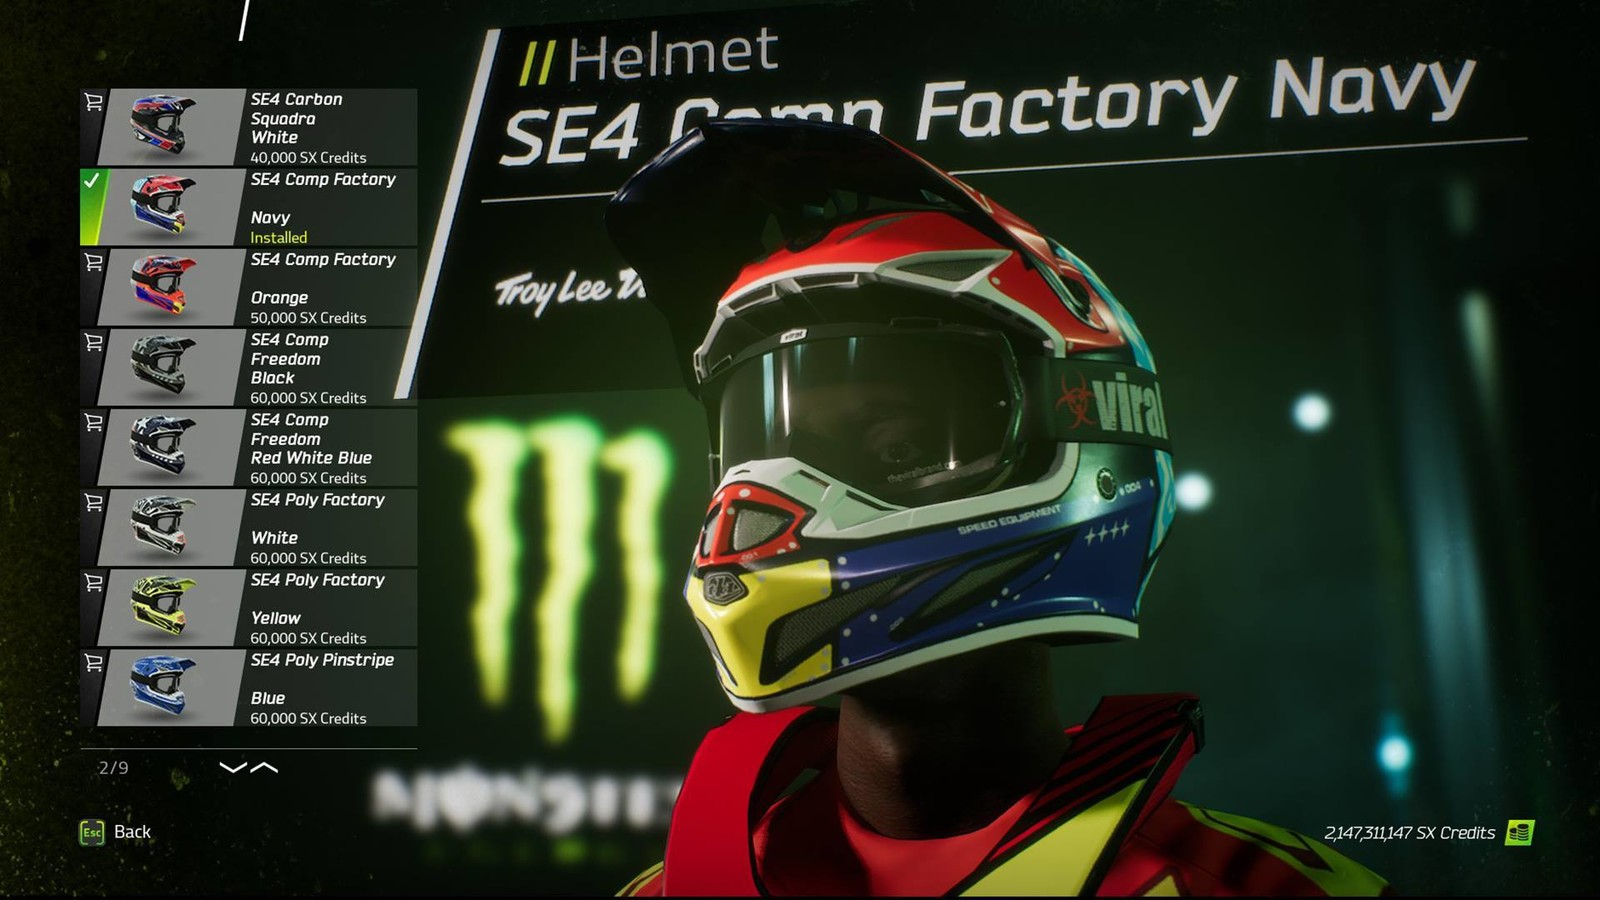 Like running different helmet colorways? Well, it looks like you'll be taken care of in this game. Here we see several different Troy Lee Designs SE4 helmet colorways. And I'm guessing each of the major helmet brands will get similar treatment. Also, notice the Atlas Brace and Viral Brand goggles? Those brands will be available in-game as well.